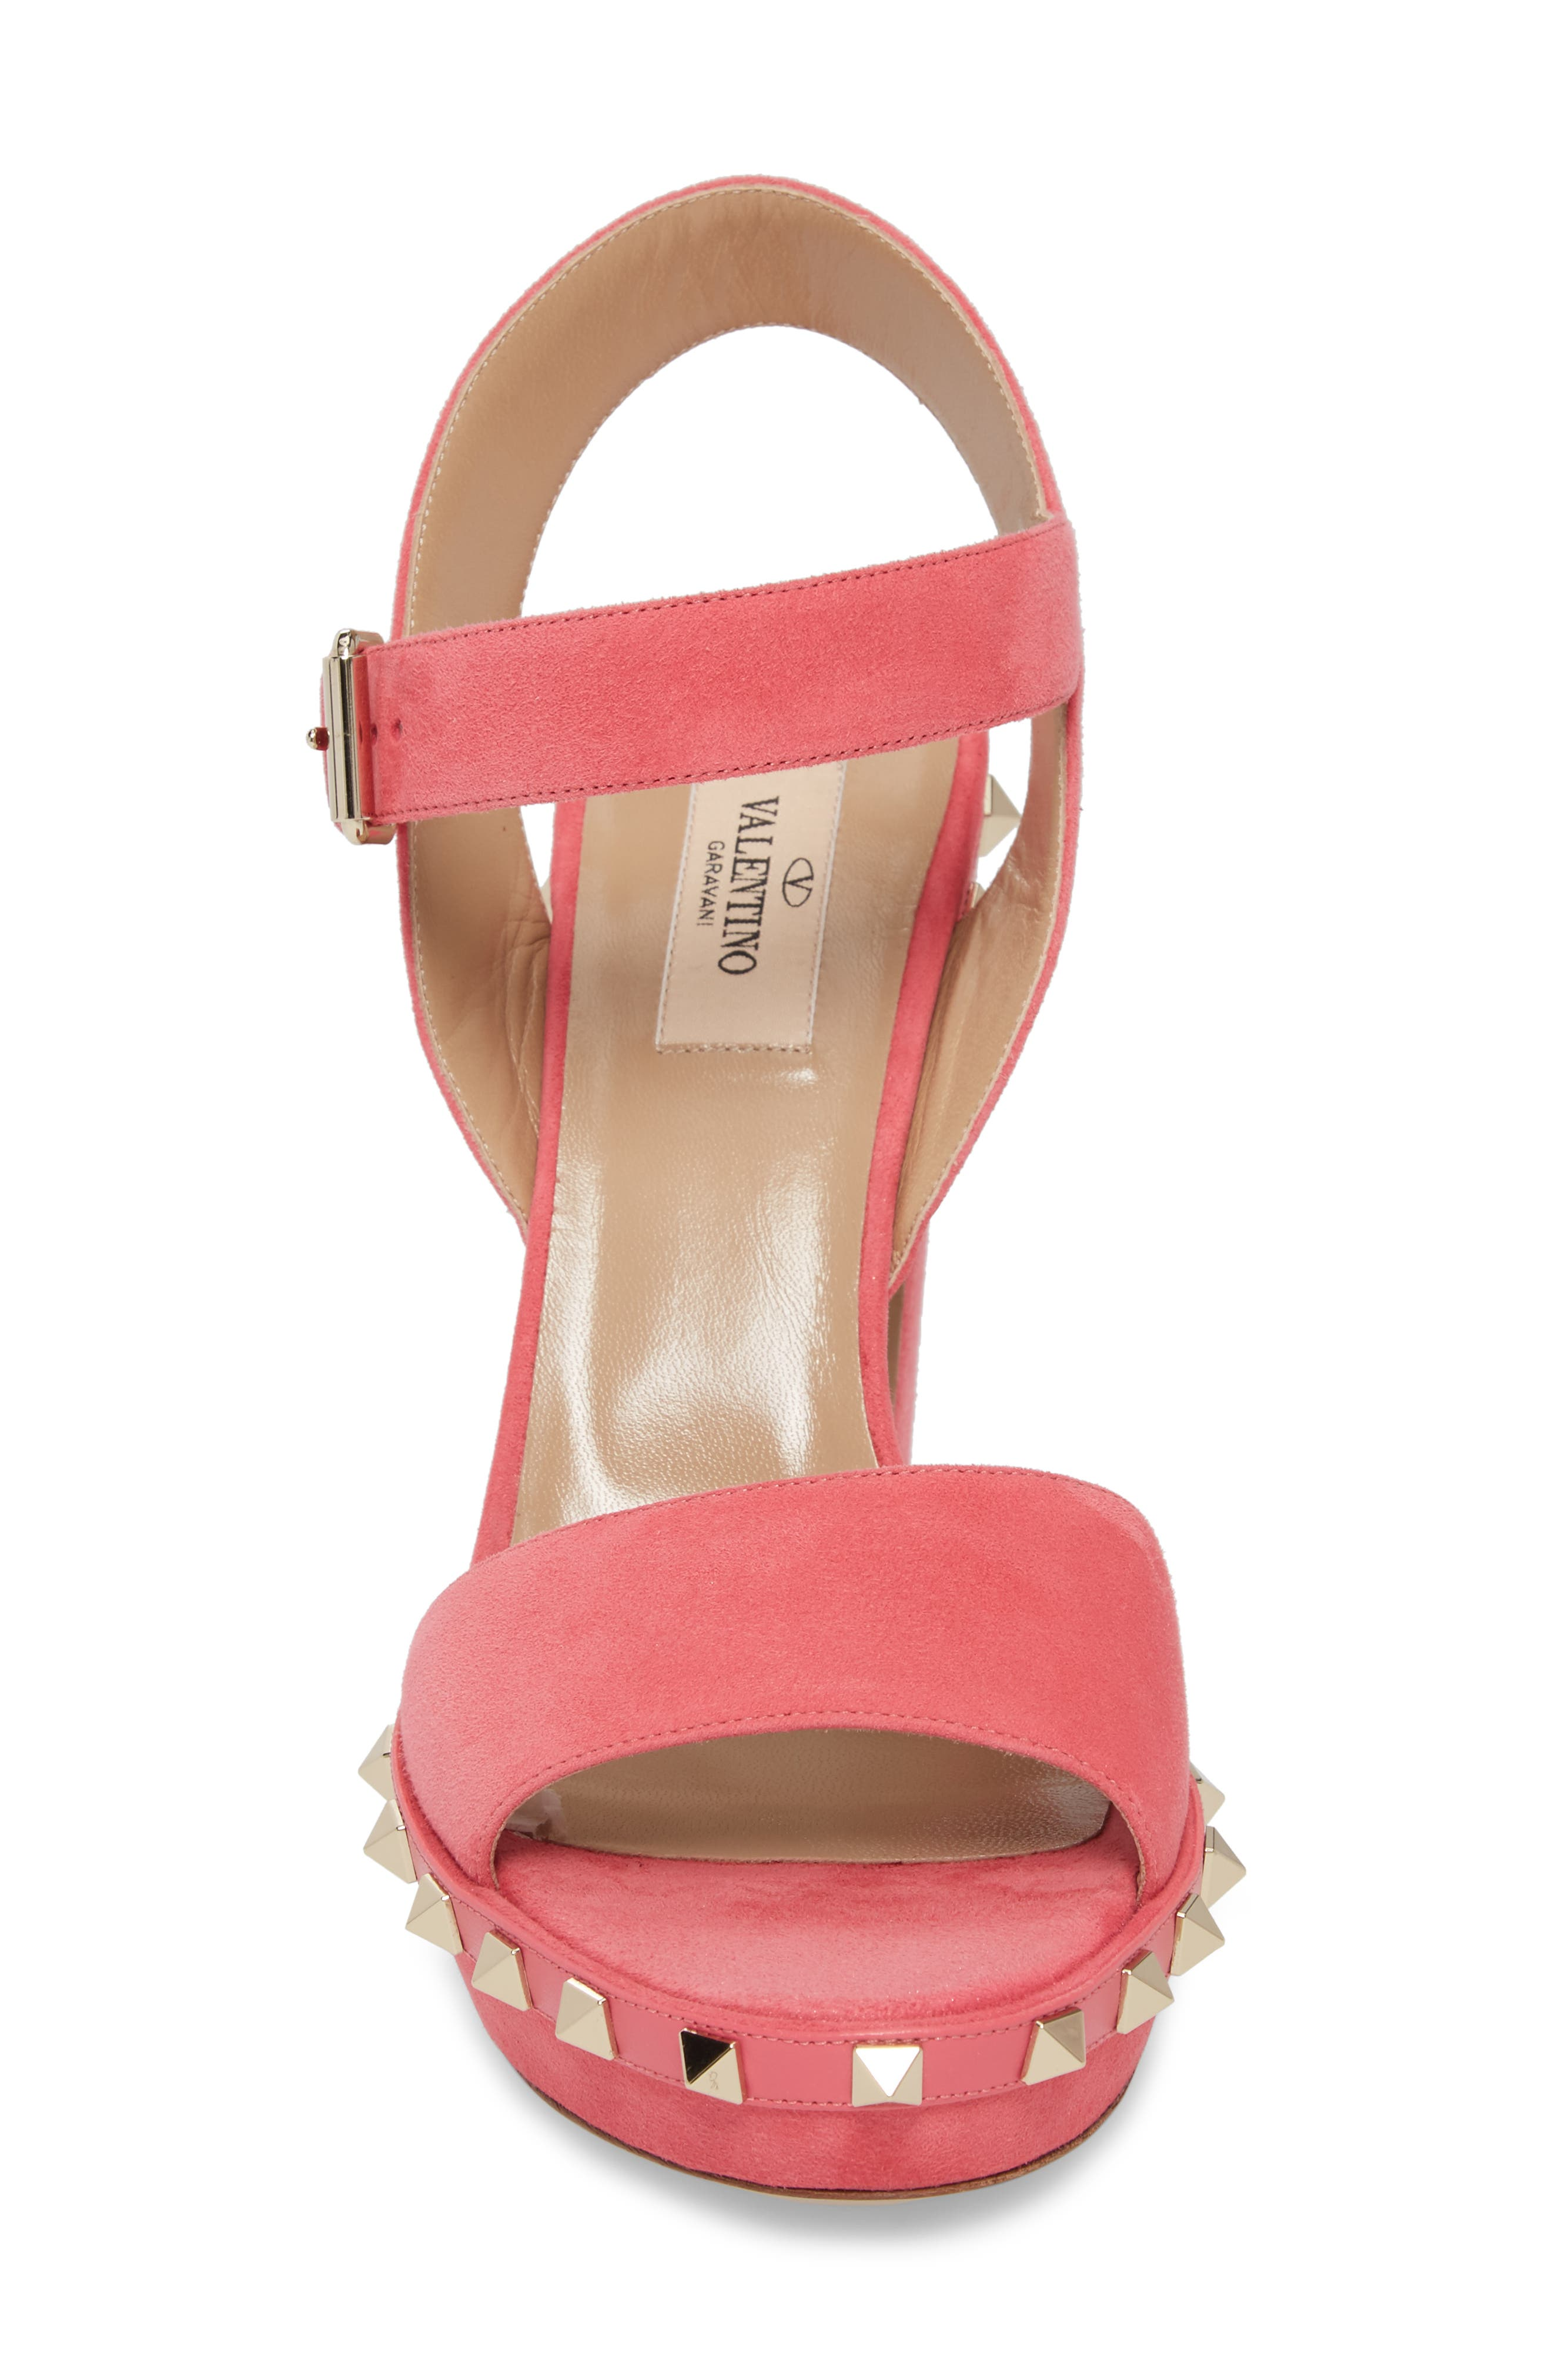 Rockstud Platform Sandal,                             Alternate thumbnail 4, color,                             Shadow Pink